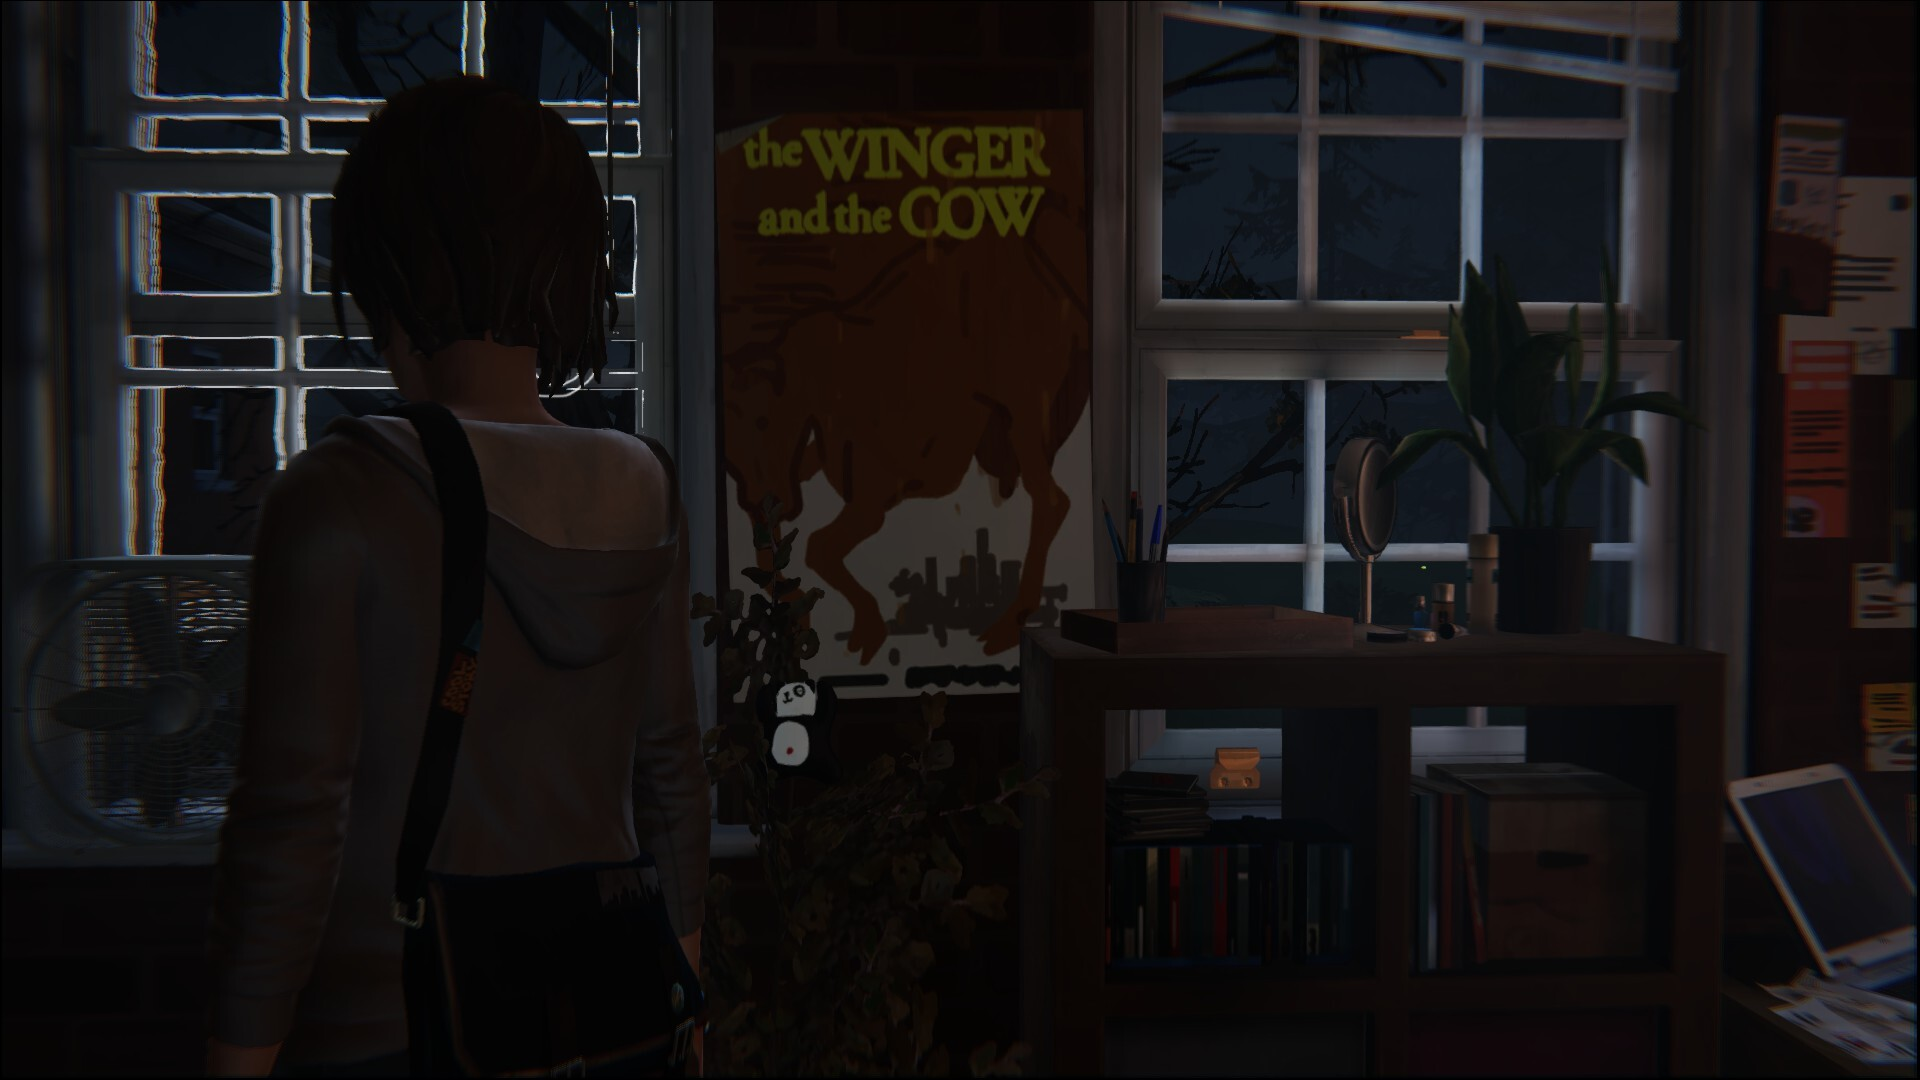 Yes, the protagonist's surname is Caulfield